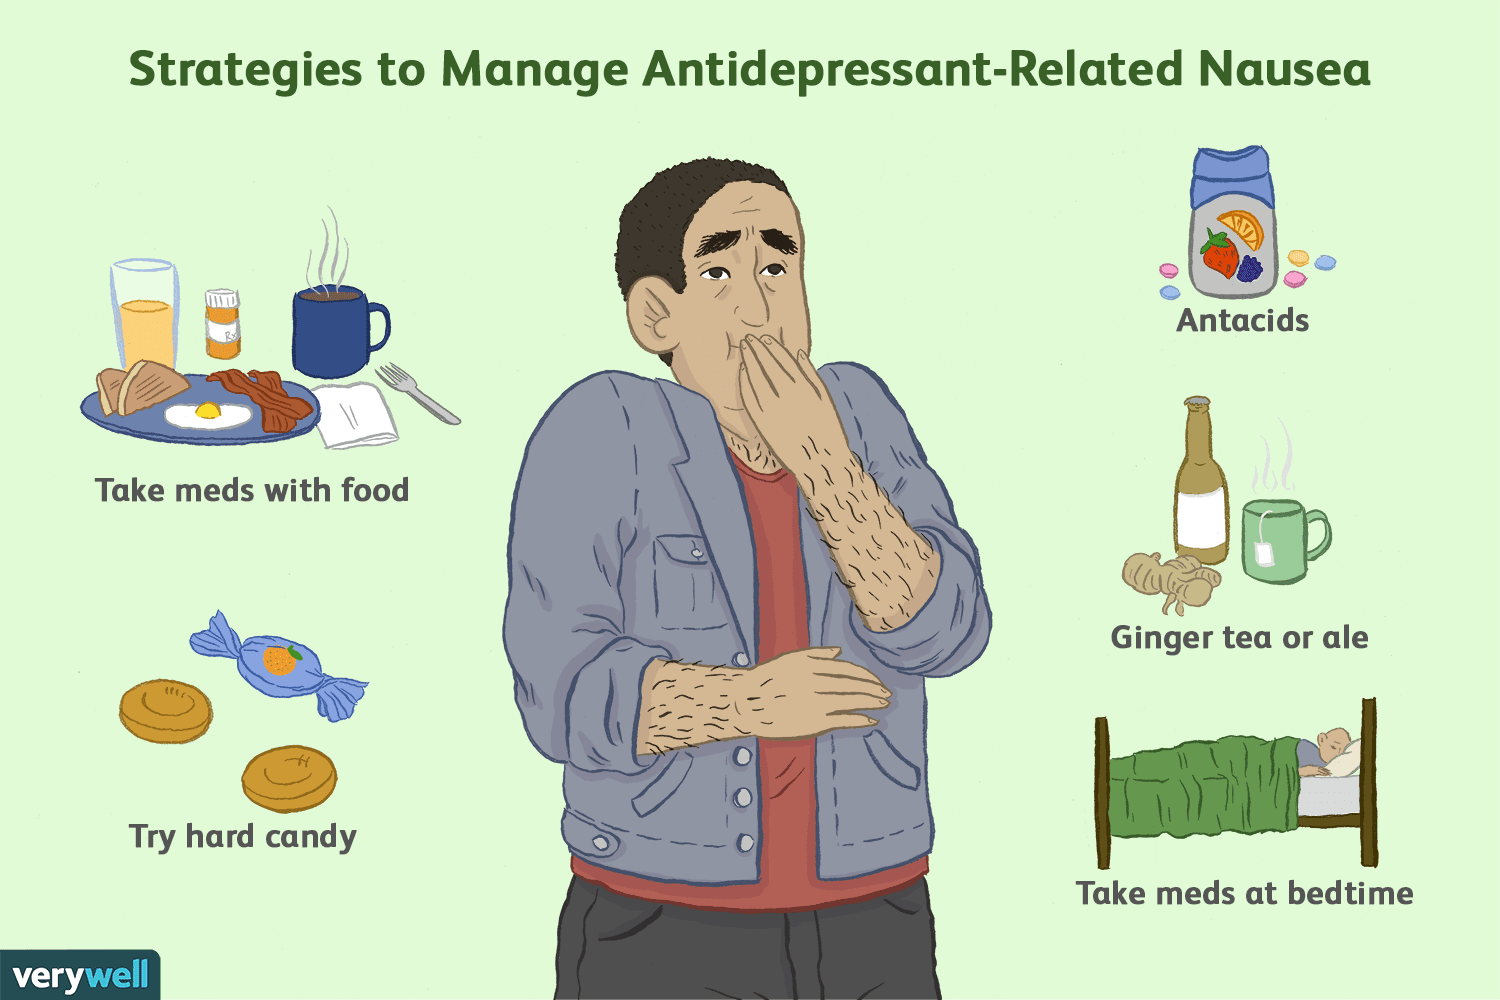 Tips for Coping With Nausea While on Antidepressants